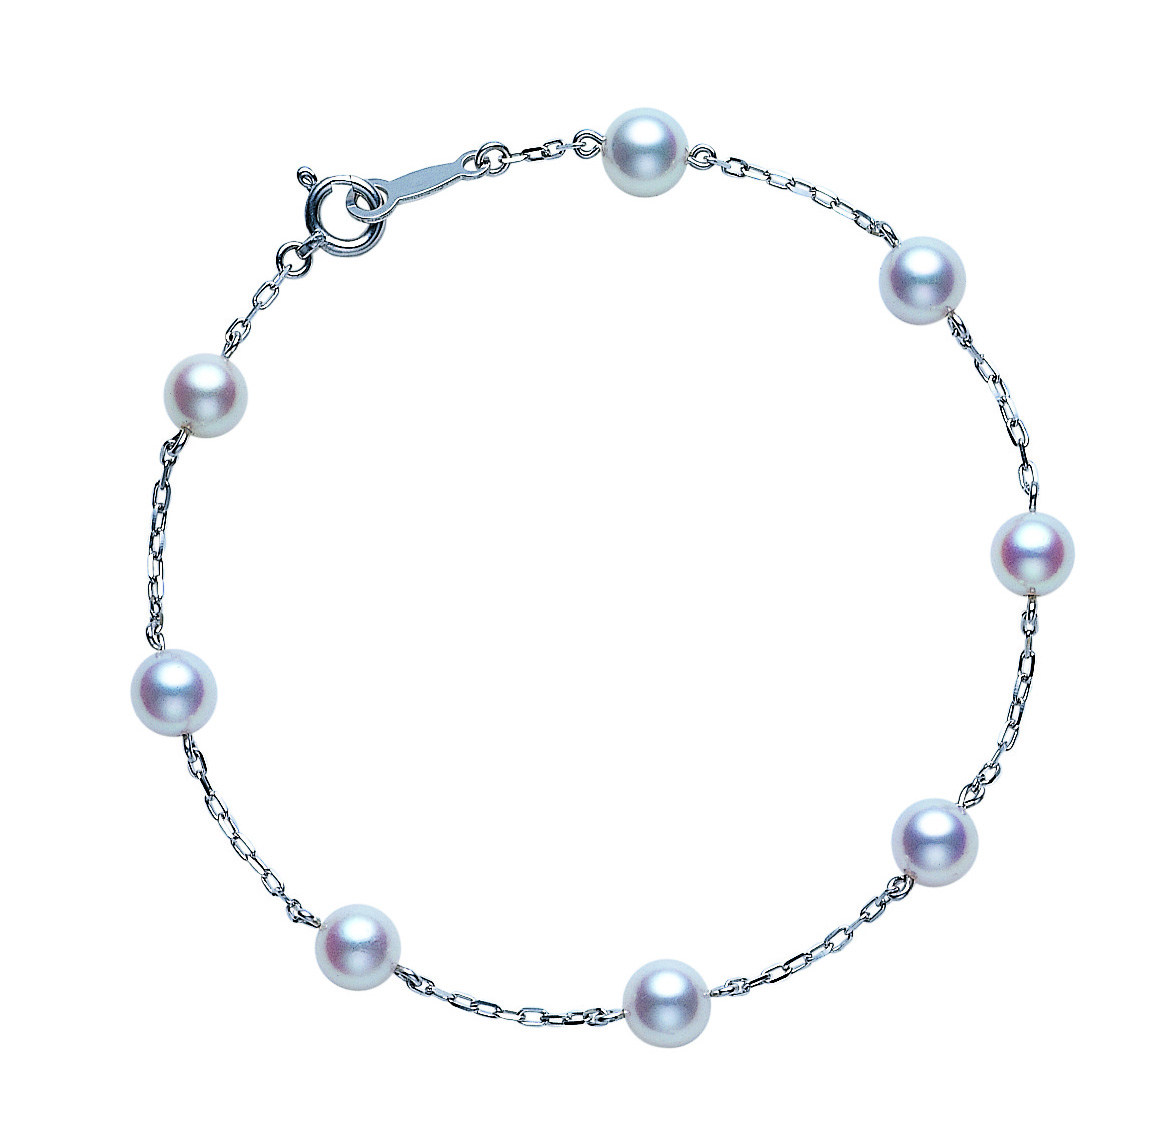 18ct White Gold Pearl Chain Bracelet